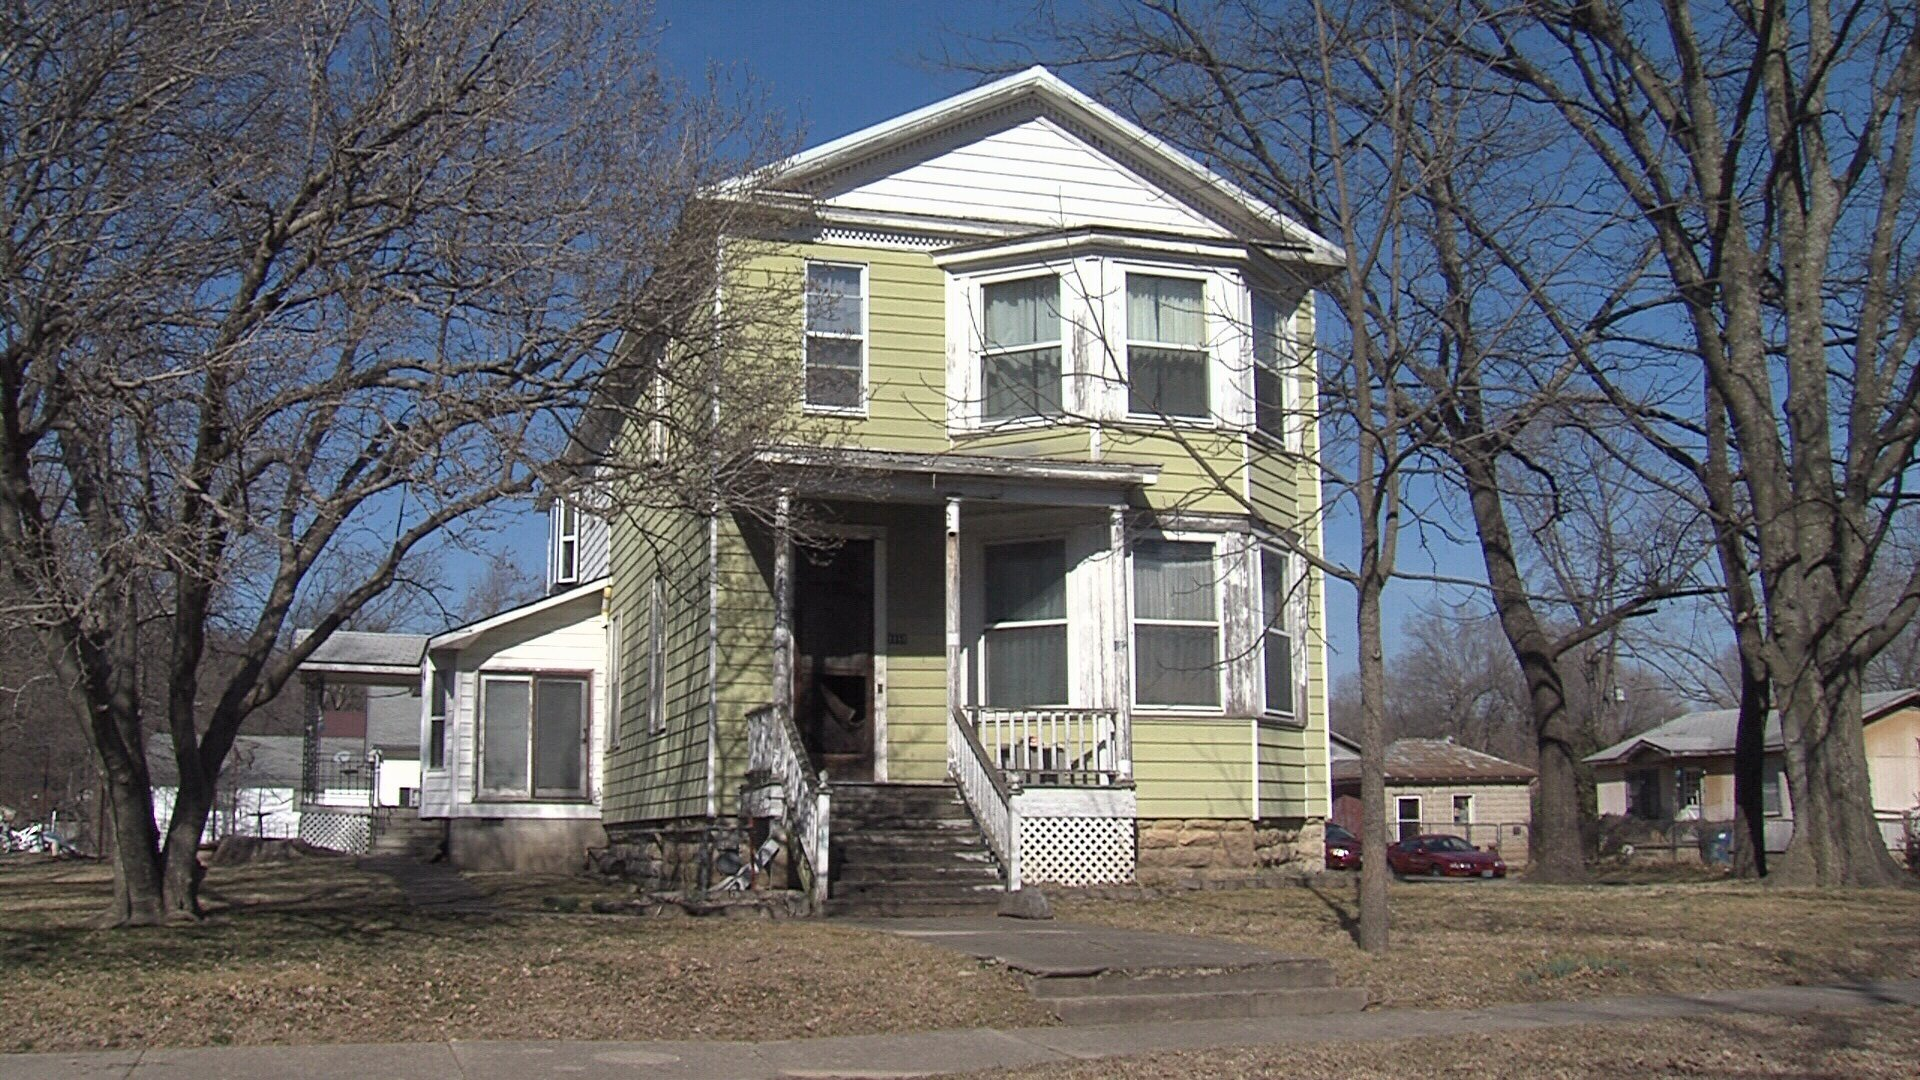 Home that detectives believe was location of abuse